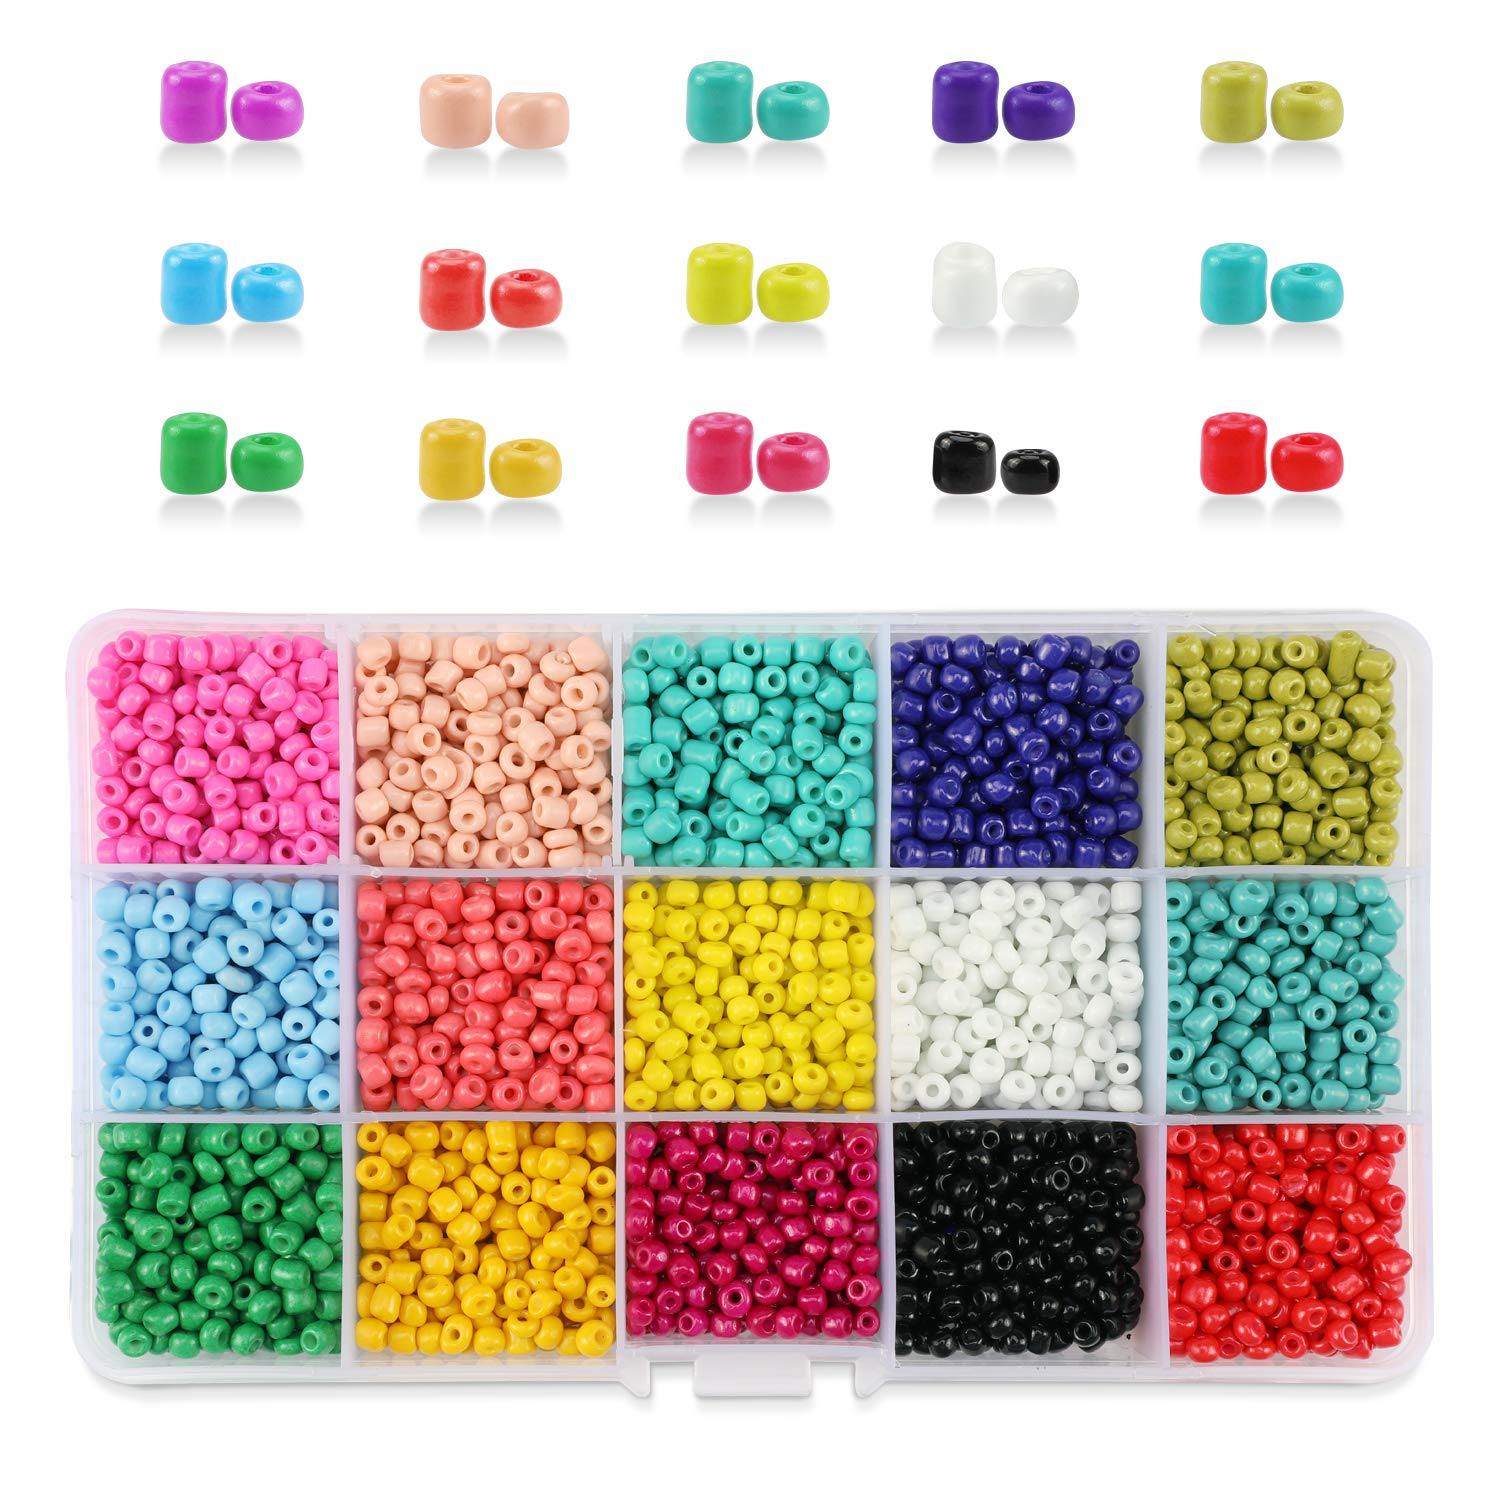 DIY Crafting Hole 1.3mm for Jewelry Making 4mm Round Mixed Colors Small Pony Beads Assorted Kit Opaque Colors Lustered Loose Spacer Beads 15 Colors Phogary 3500pcs Glass Seed Beads